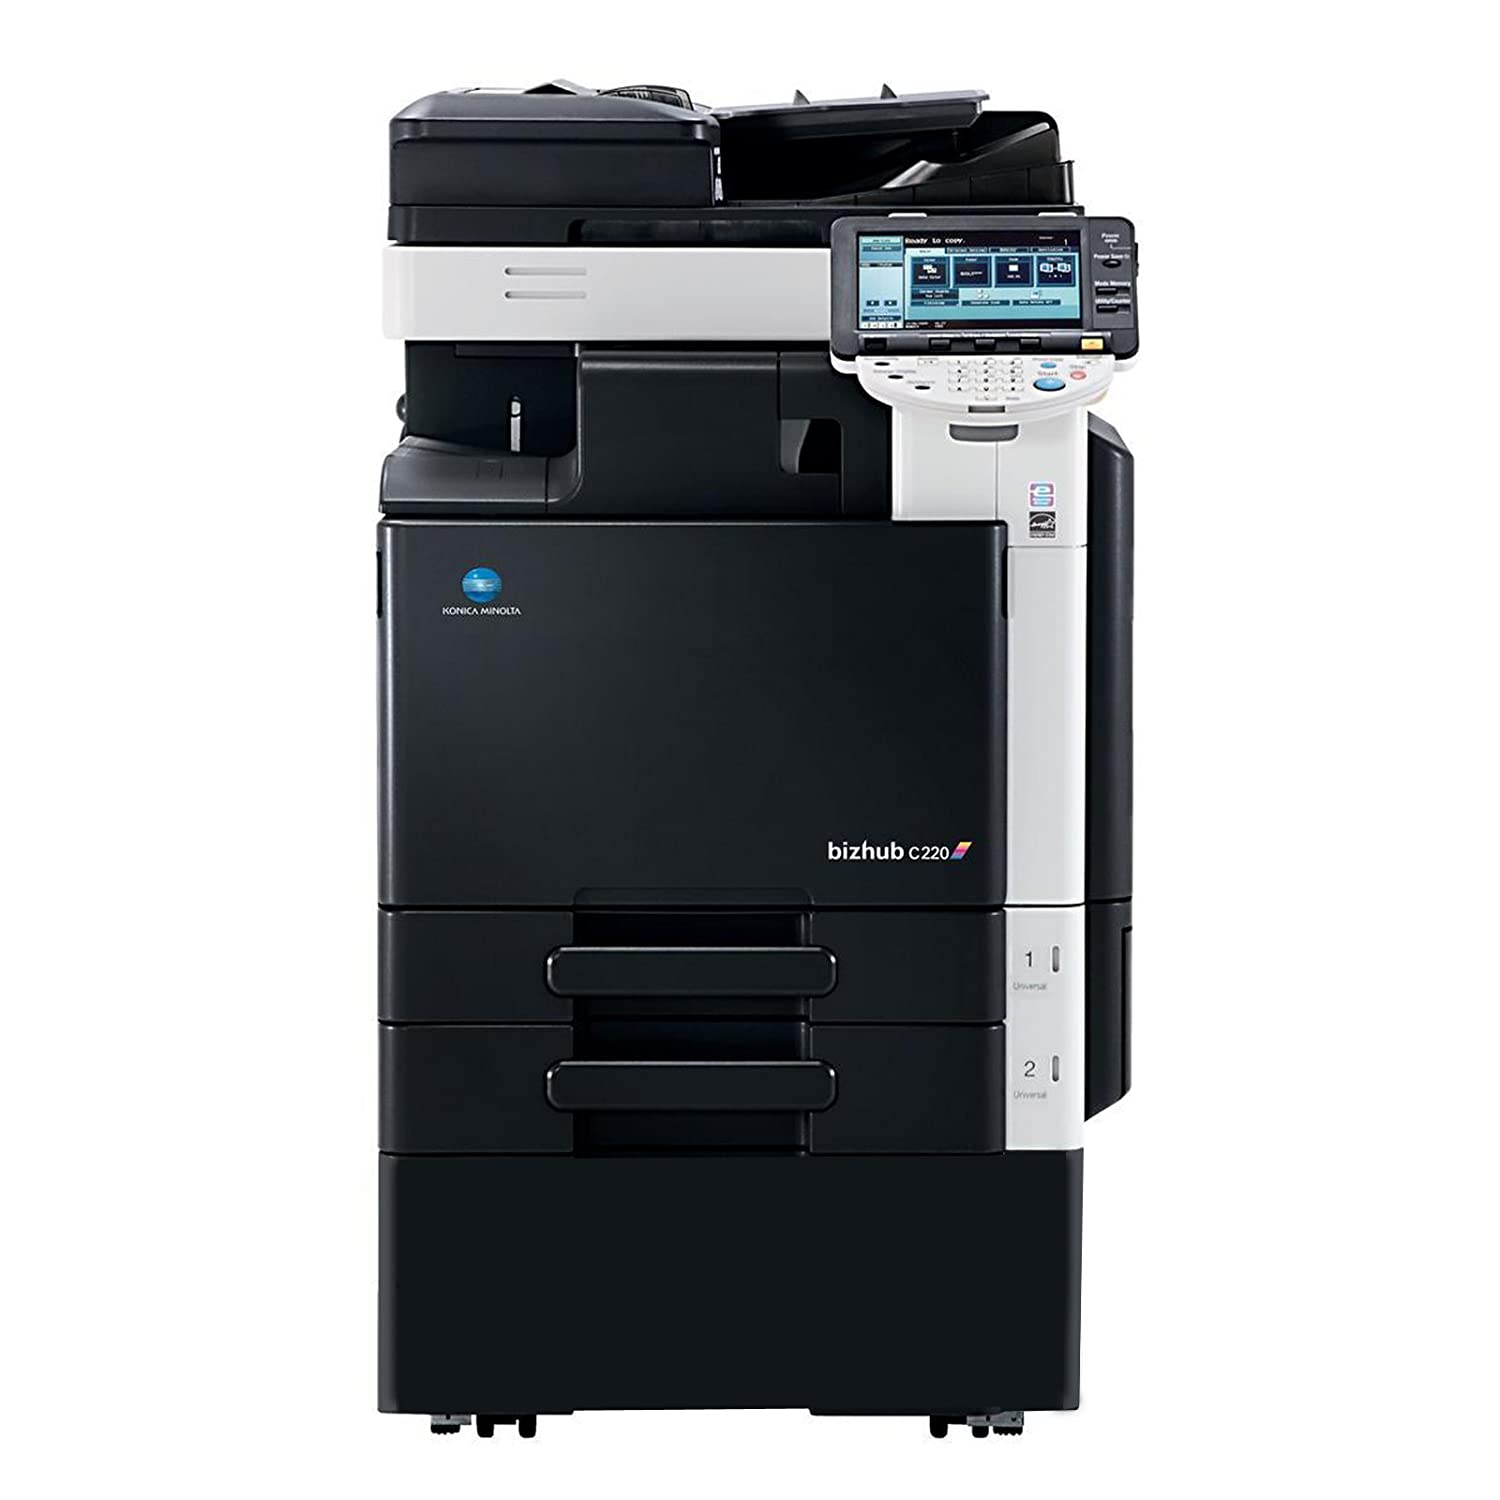 Amazon.com : Refurbished Konica Minolta BizHub C220 Tabloid-size Color  Multifunction Printer - 22ppm, Copy, Print, Color Scan, 2 Trays and Stand :  ...